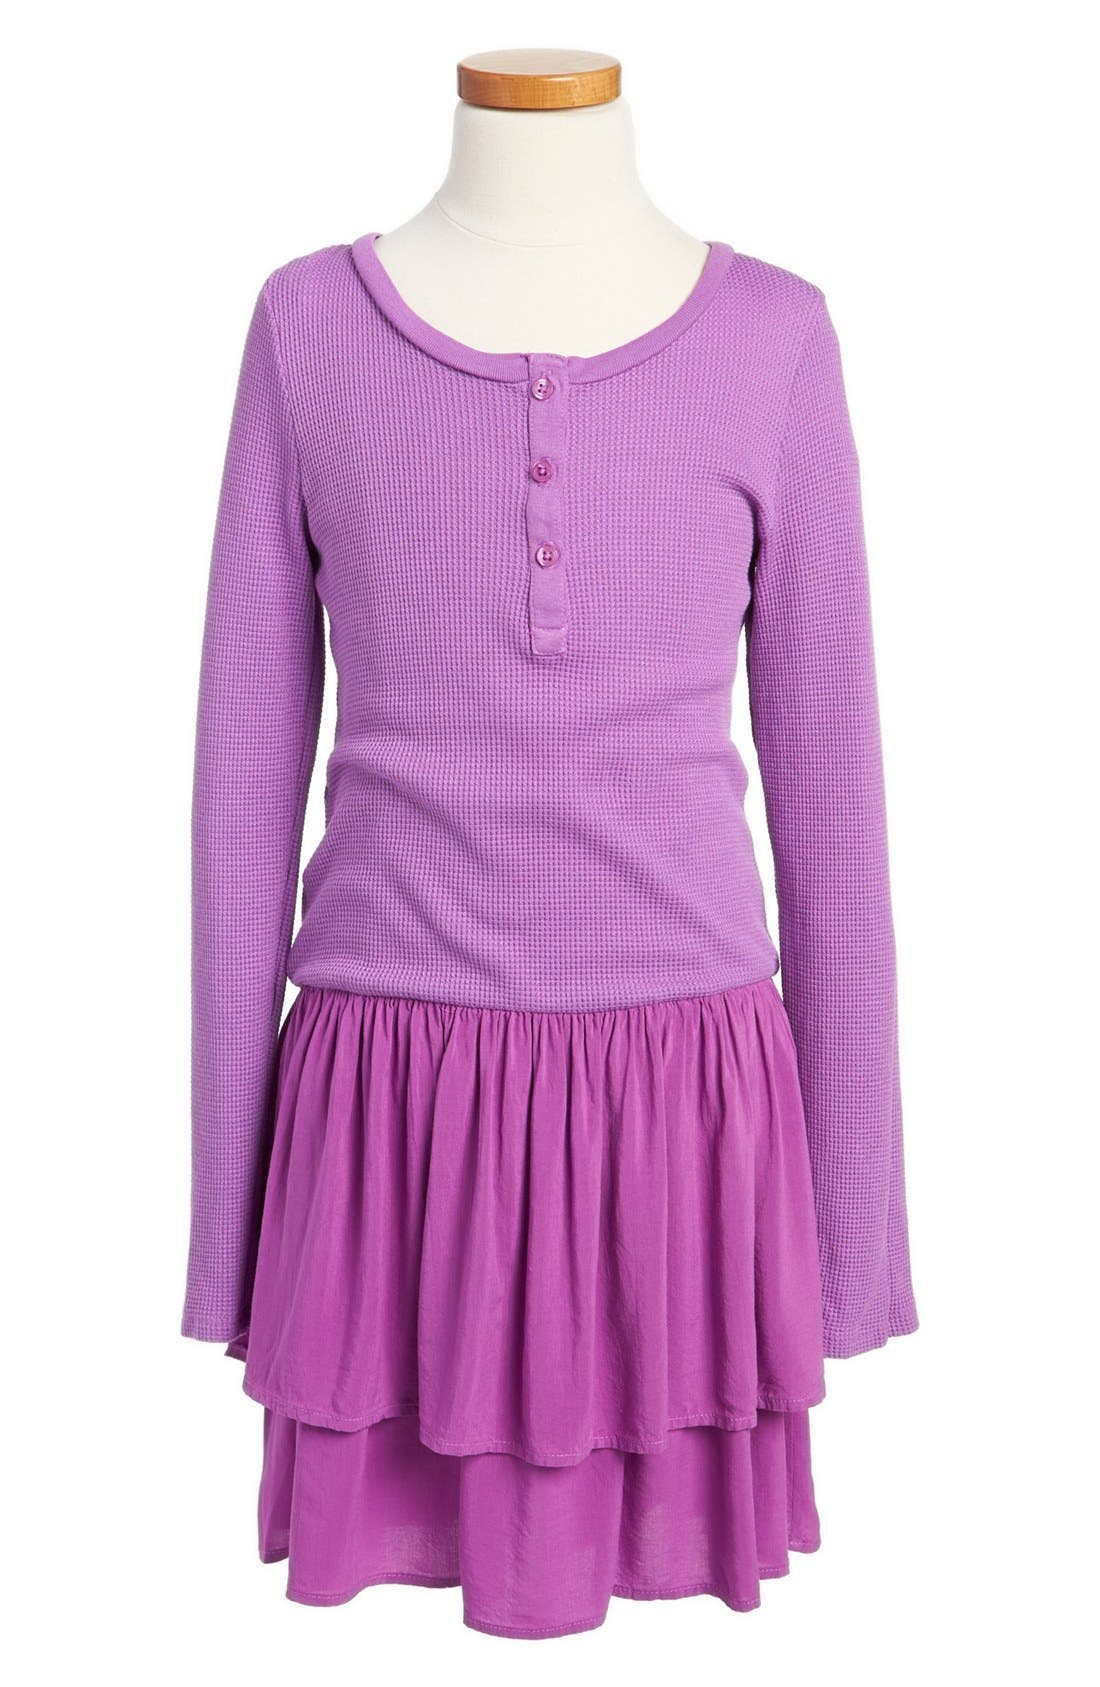 Alternate Image 1 Selected - Splendid Thermal Henley Dress (Big Girls)